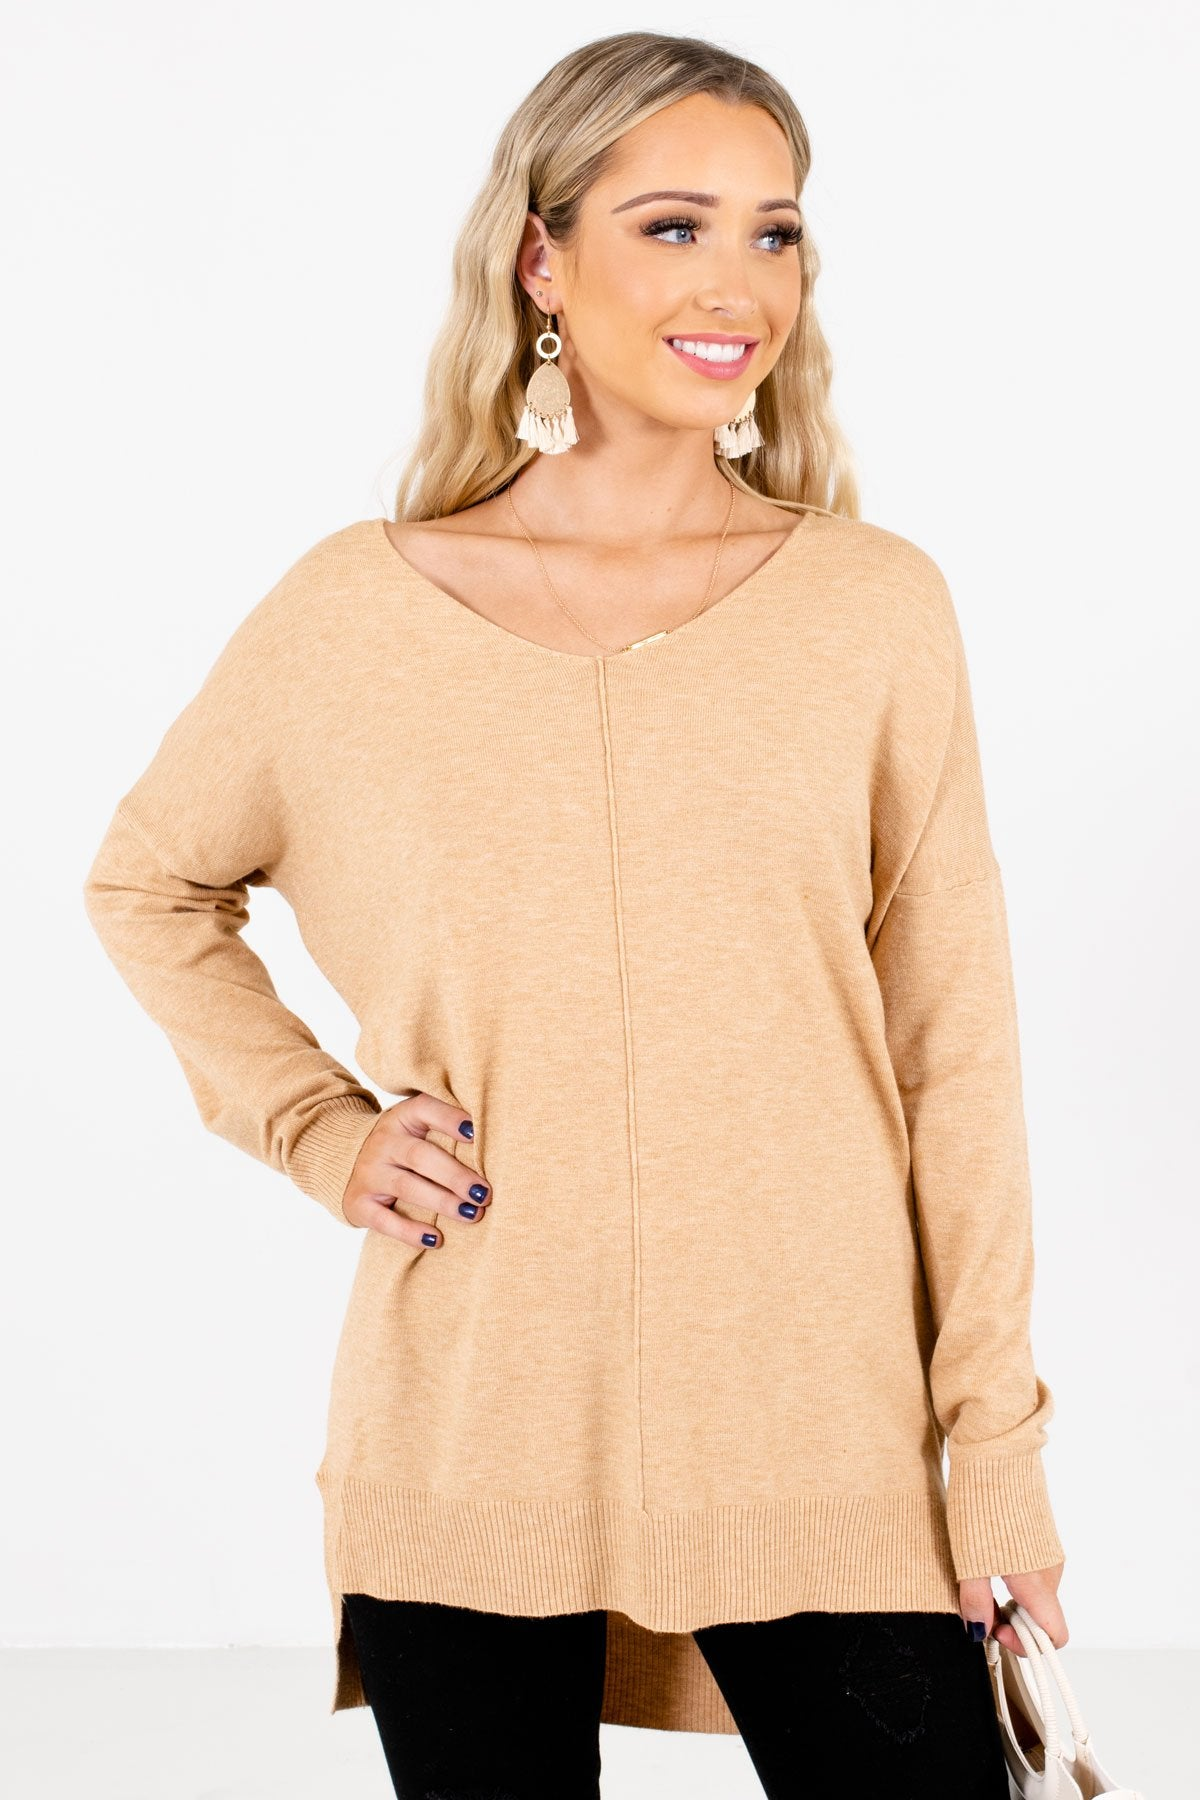 Camel Brown V-Neckline Boutique Sweaters for Women